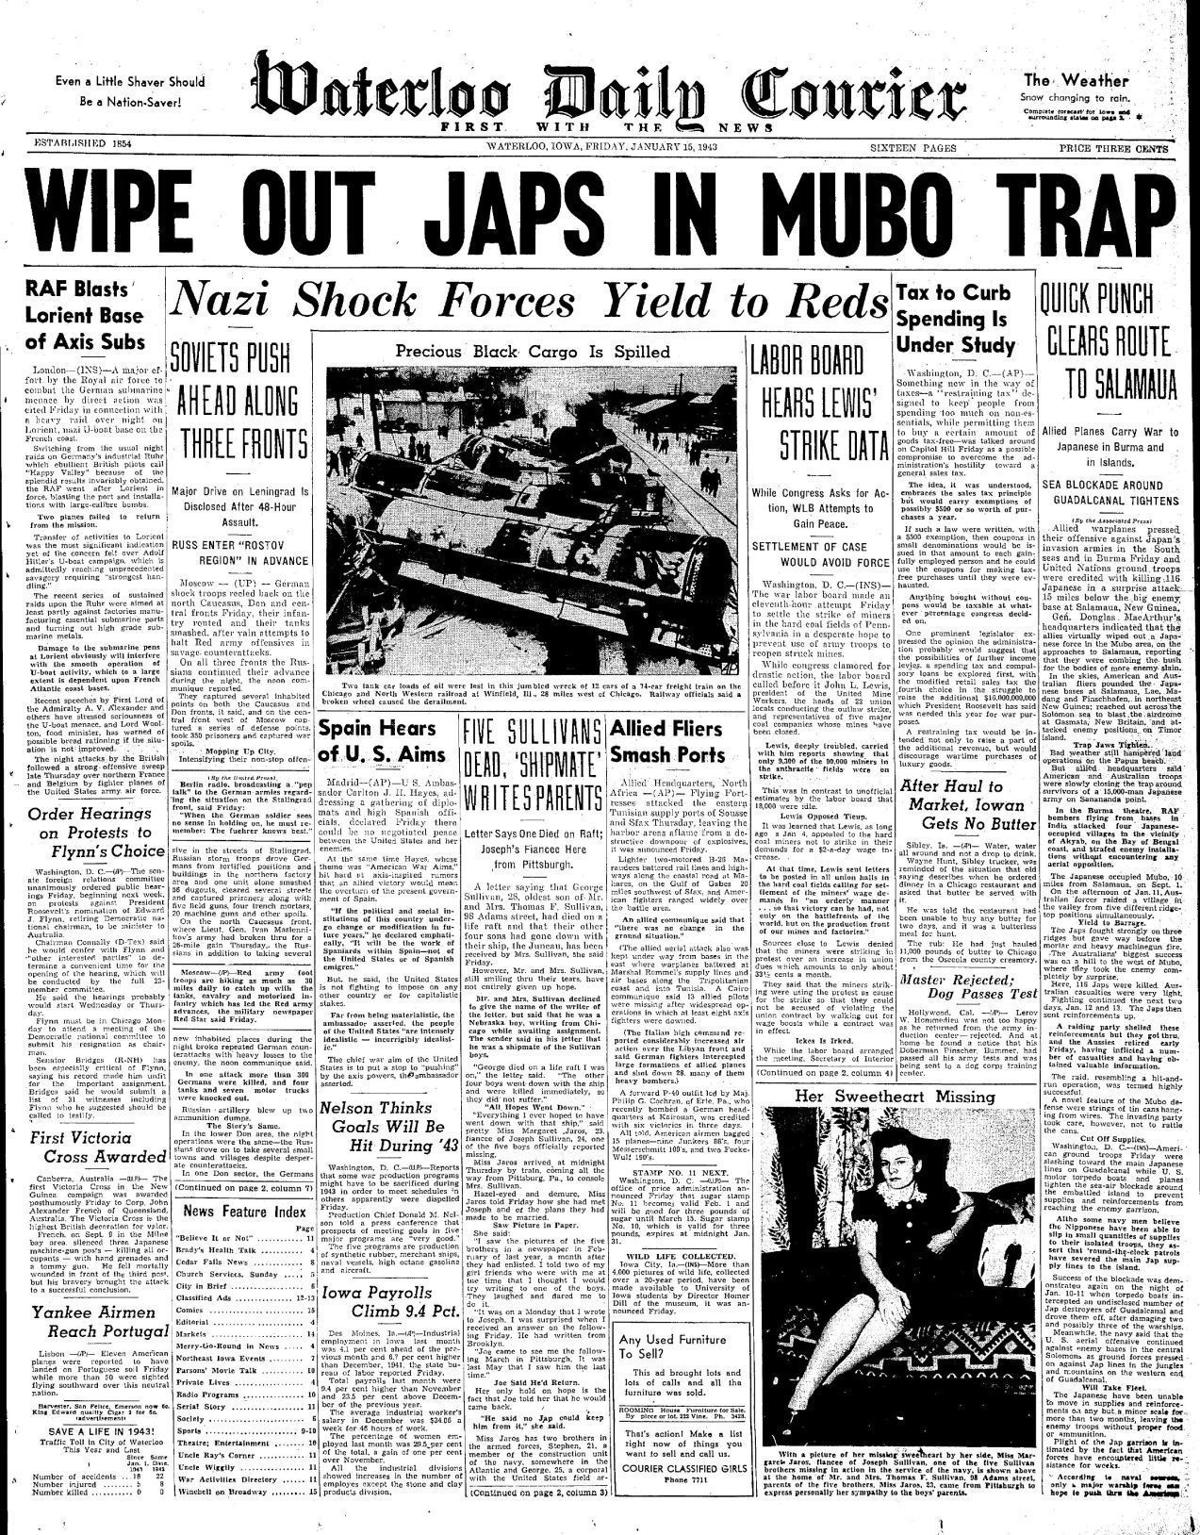 Courier Jan. 15, 1943